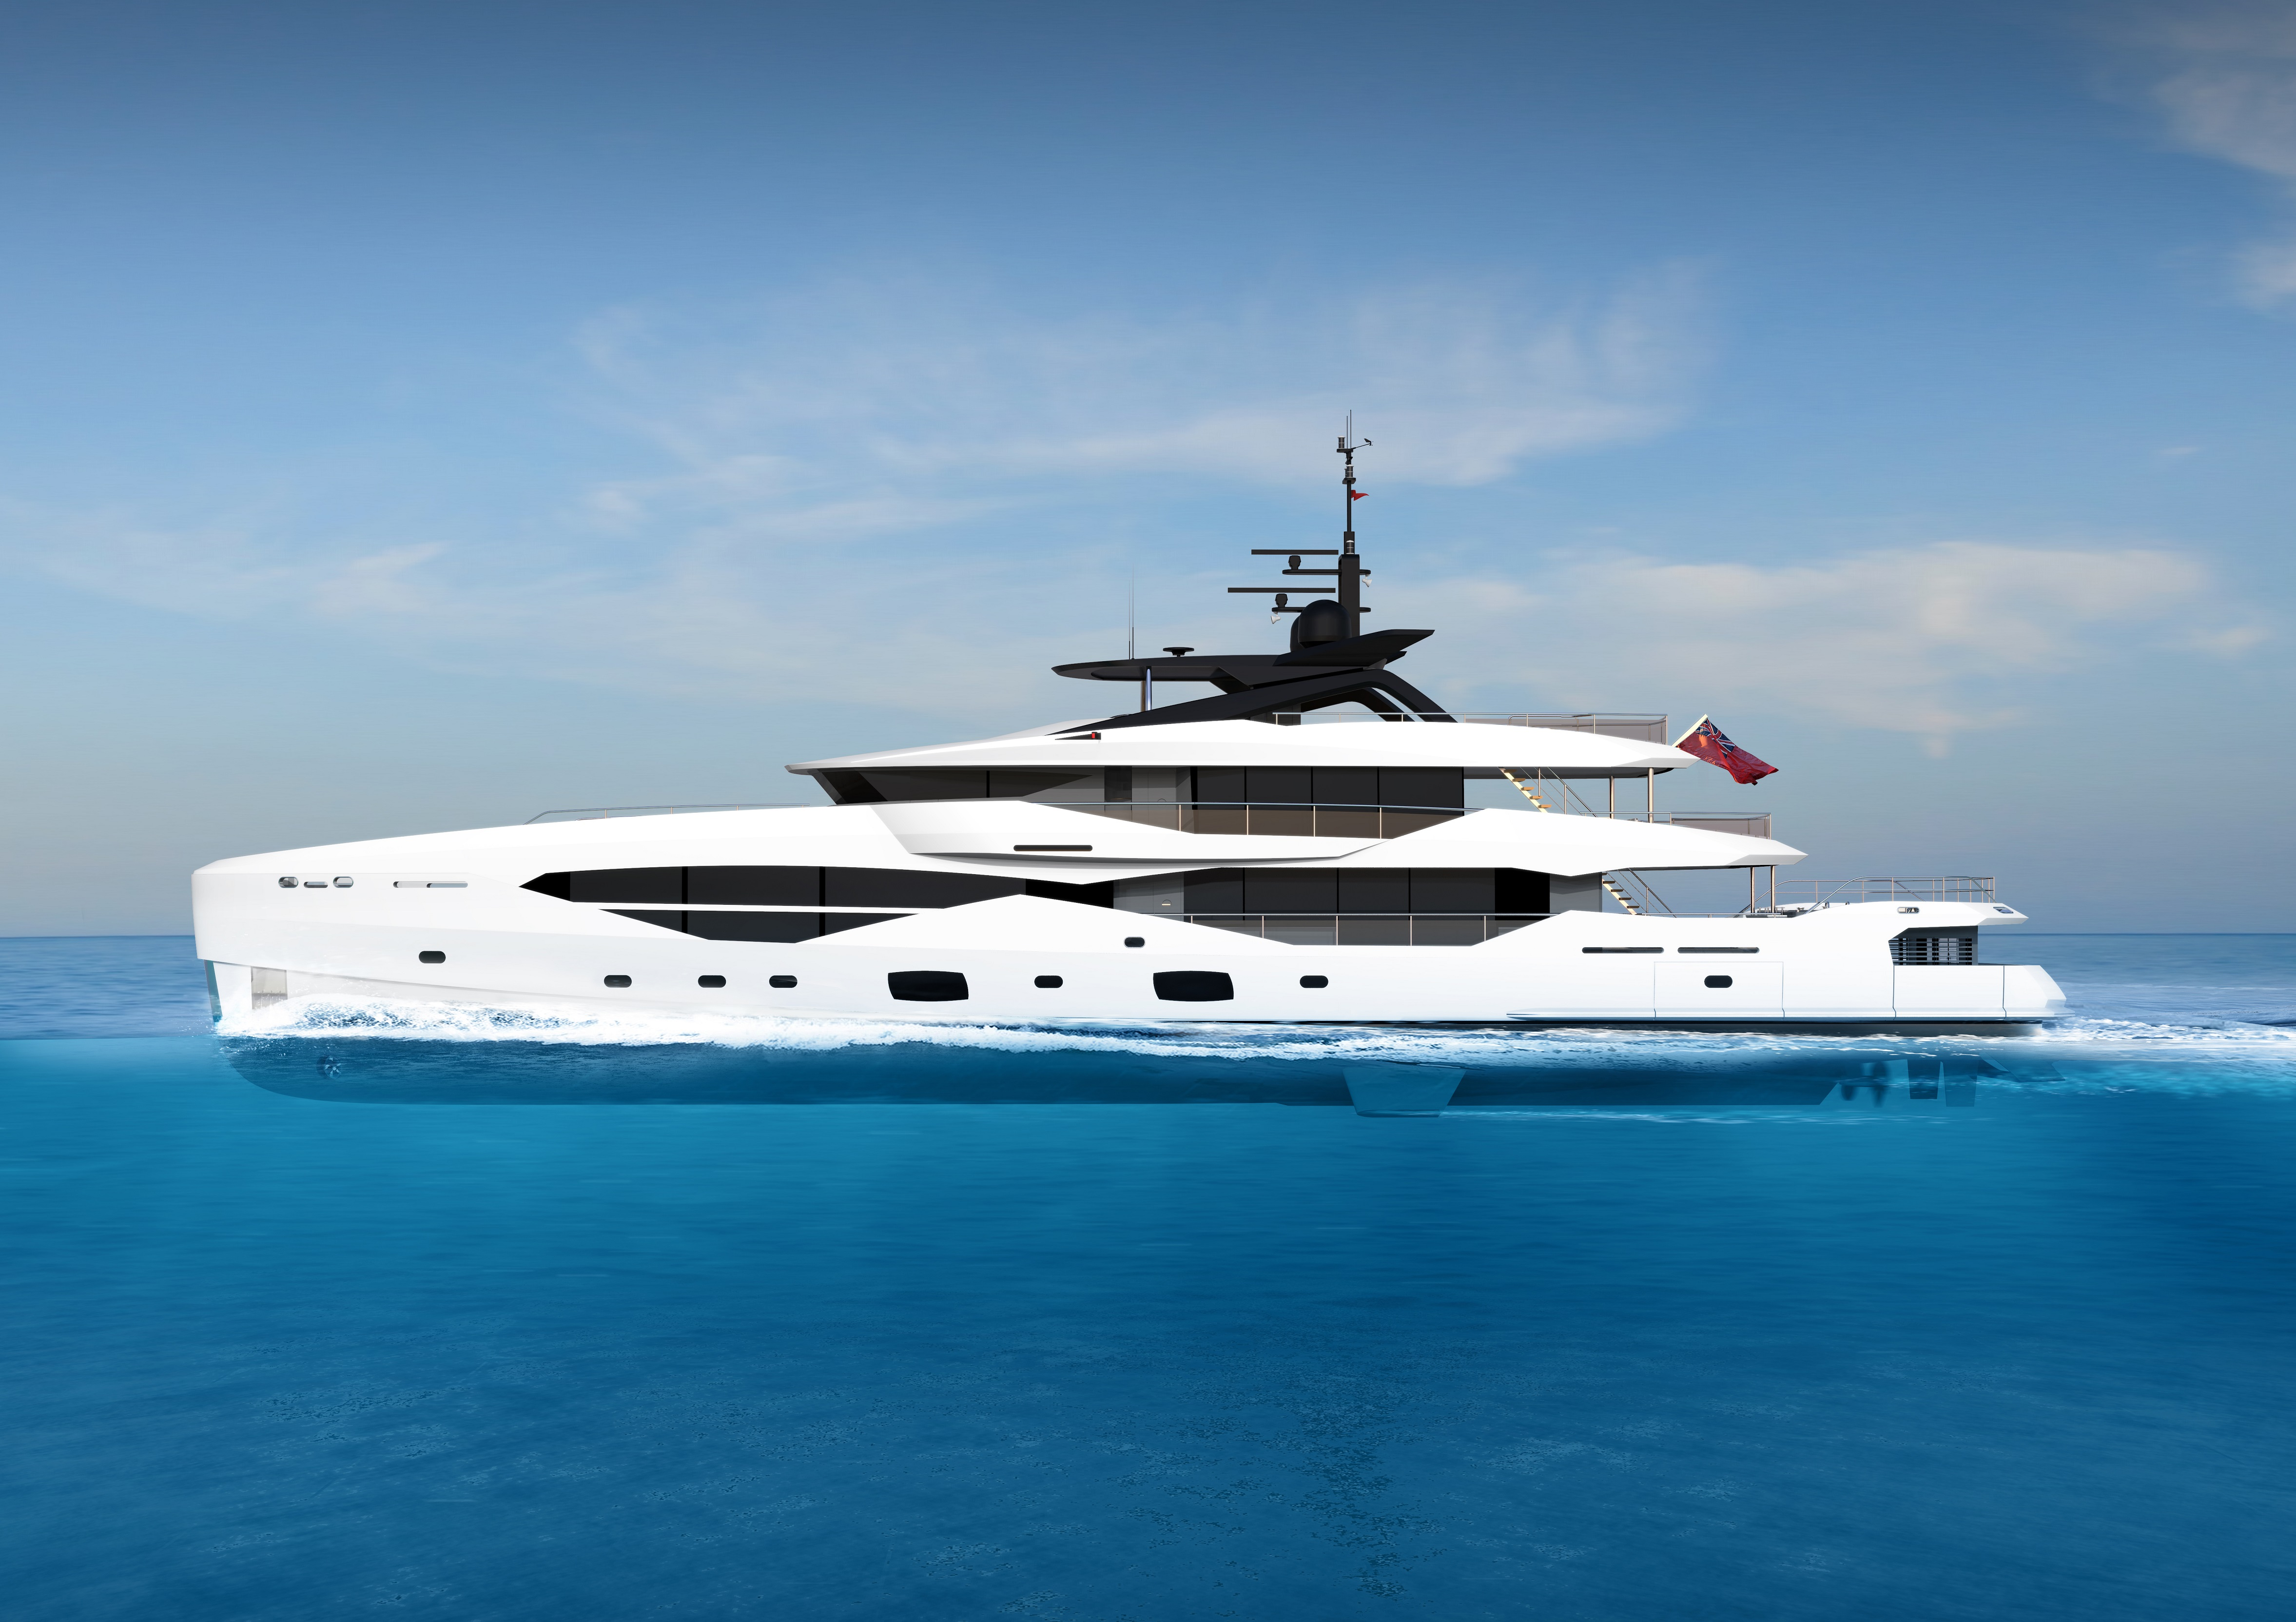 SUNSEEKER OFFERS CUSTOMERS THE ULTIMATE 'BESPOKE' CUSTOMISATION SERVICE FOR NEW 161 YACHT